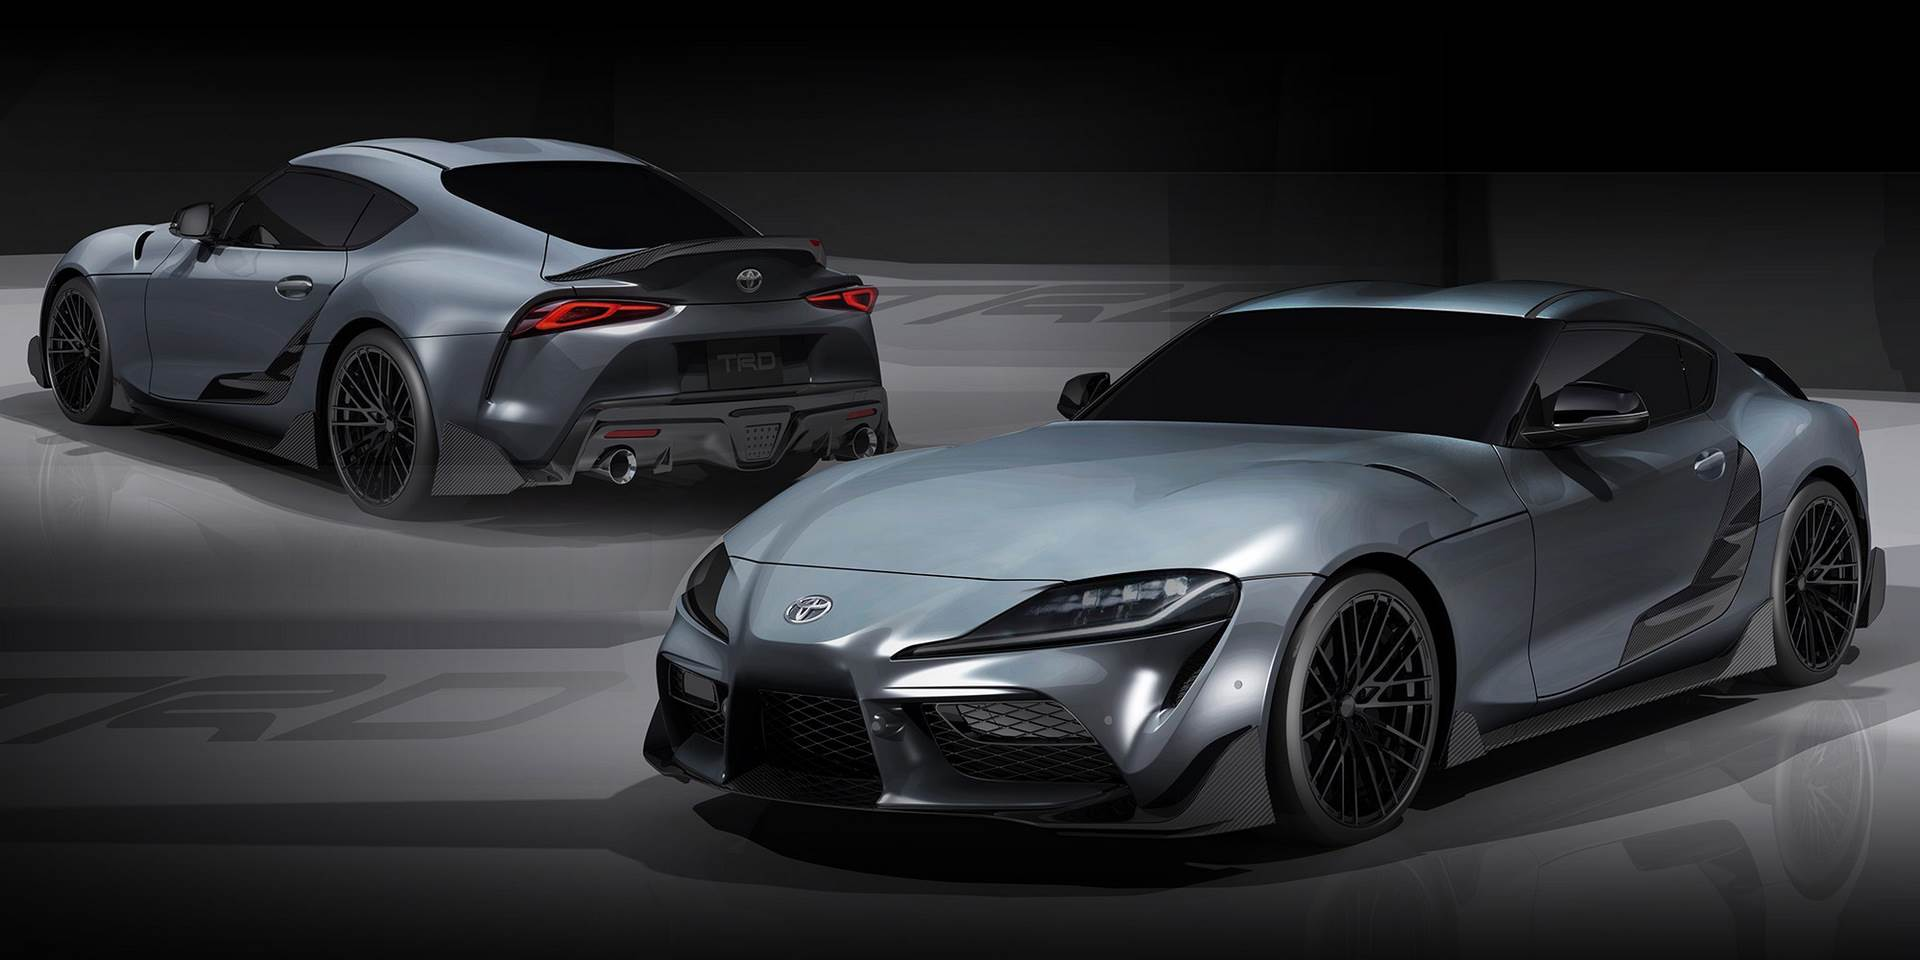 Toyota Supra TRD Performance Line Concept image gallery